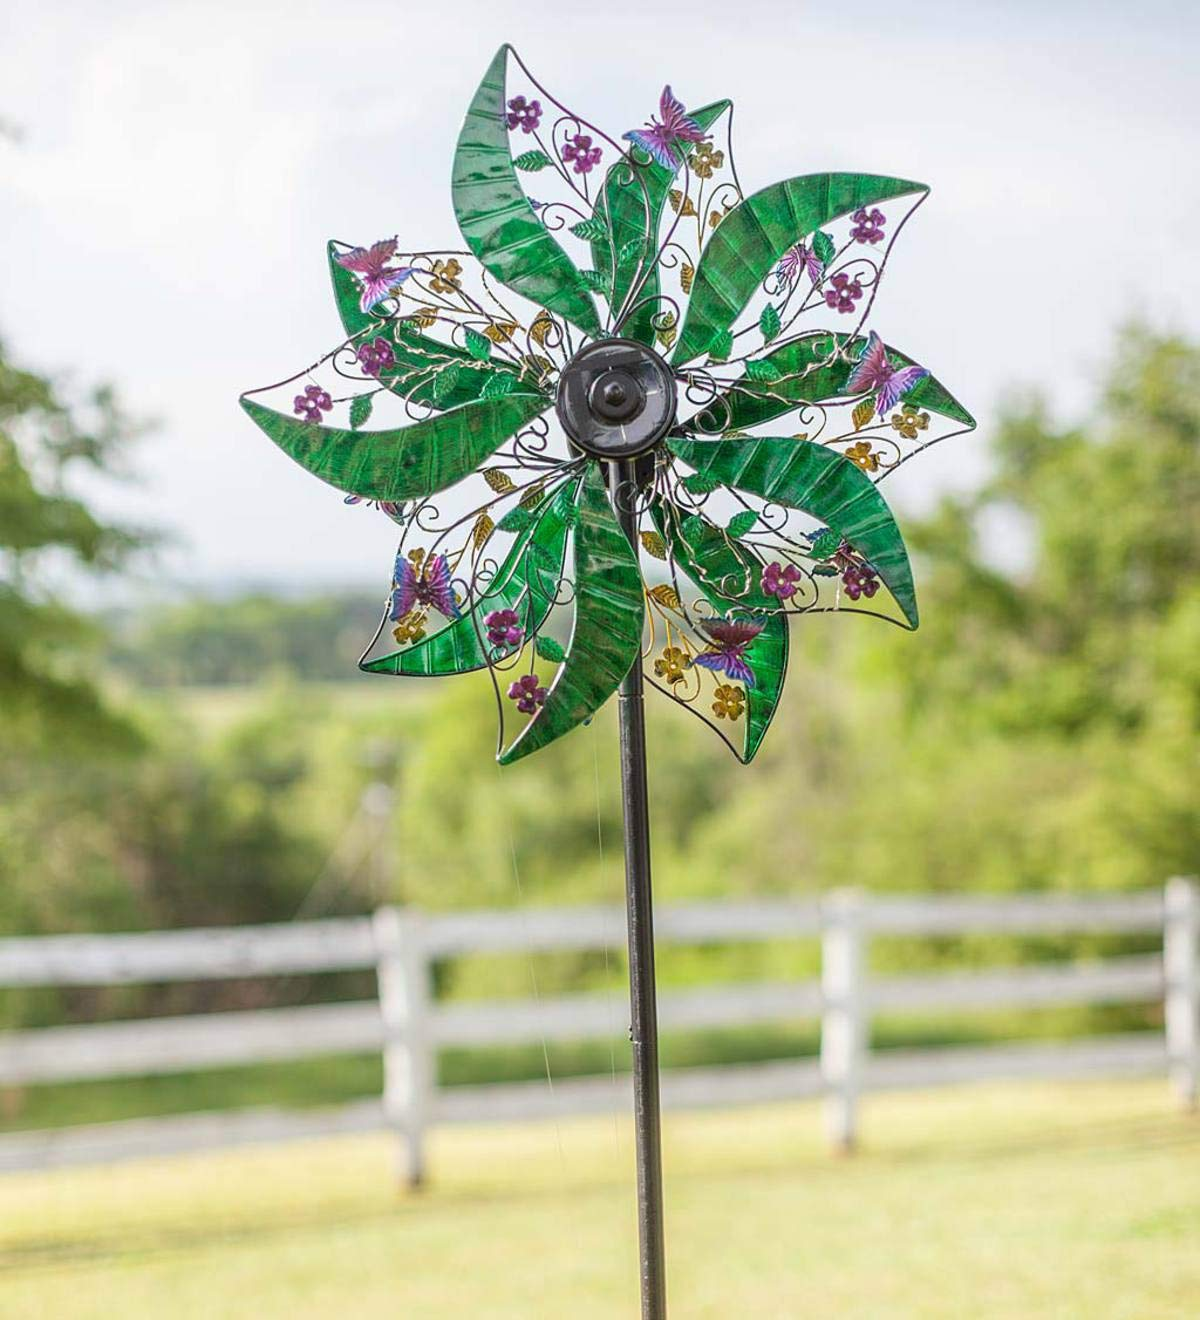 Wind & Weather Green and Purple Solar Spinner - 23.5 W x 10 D x 75 H